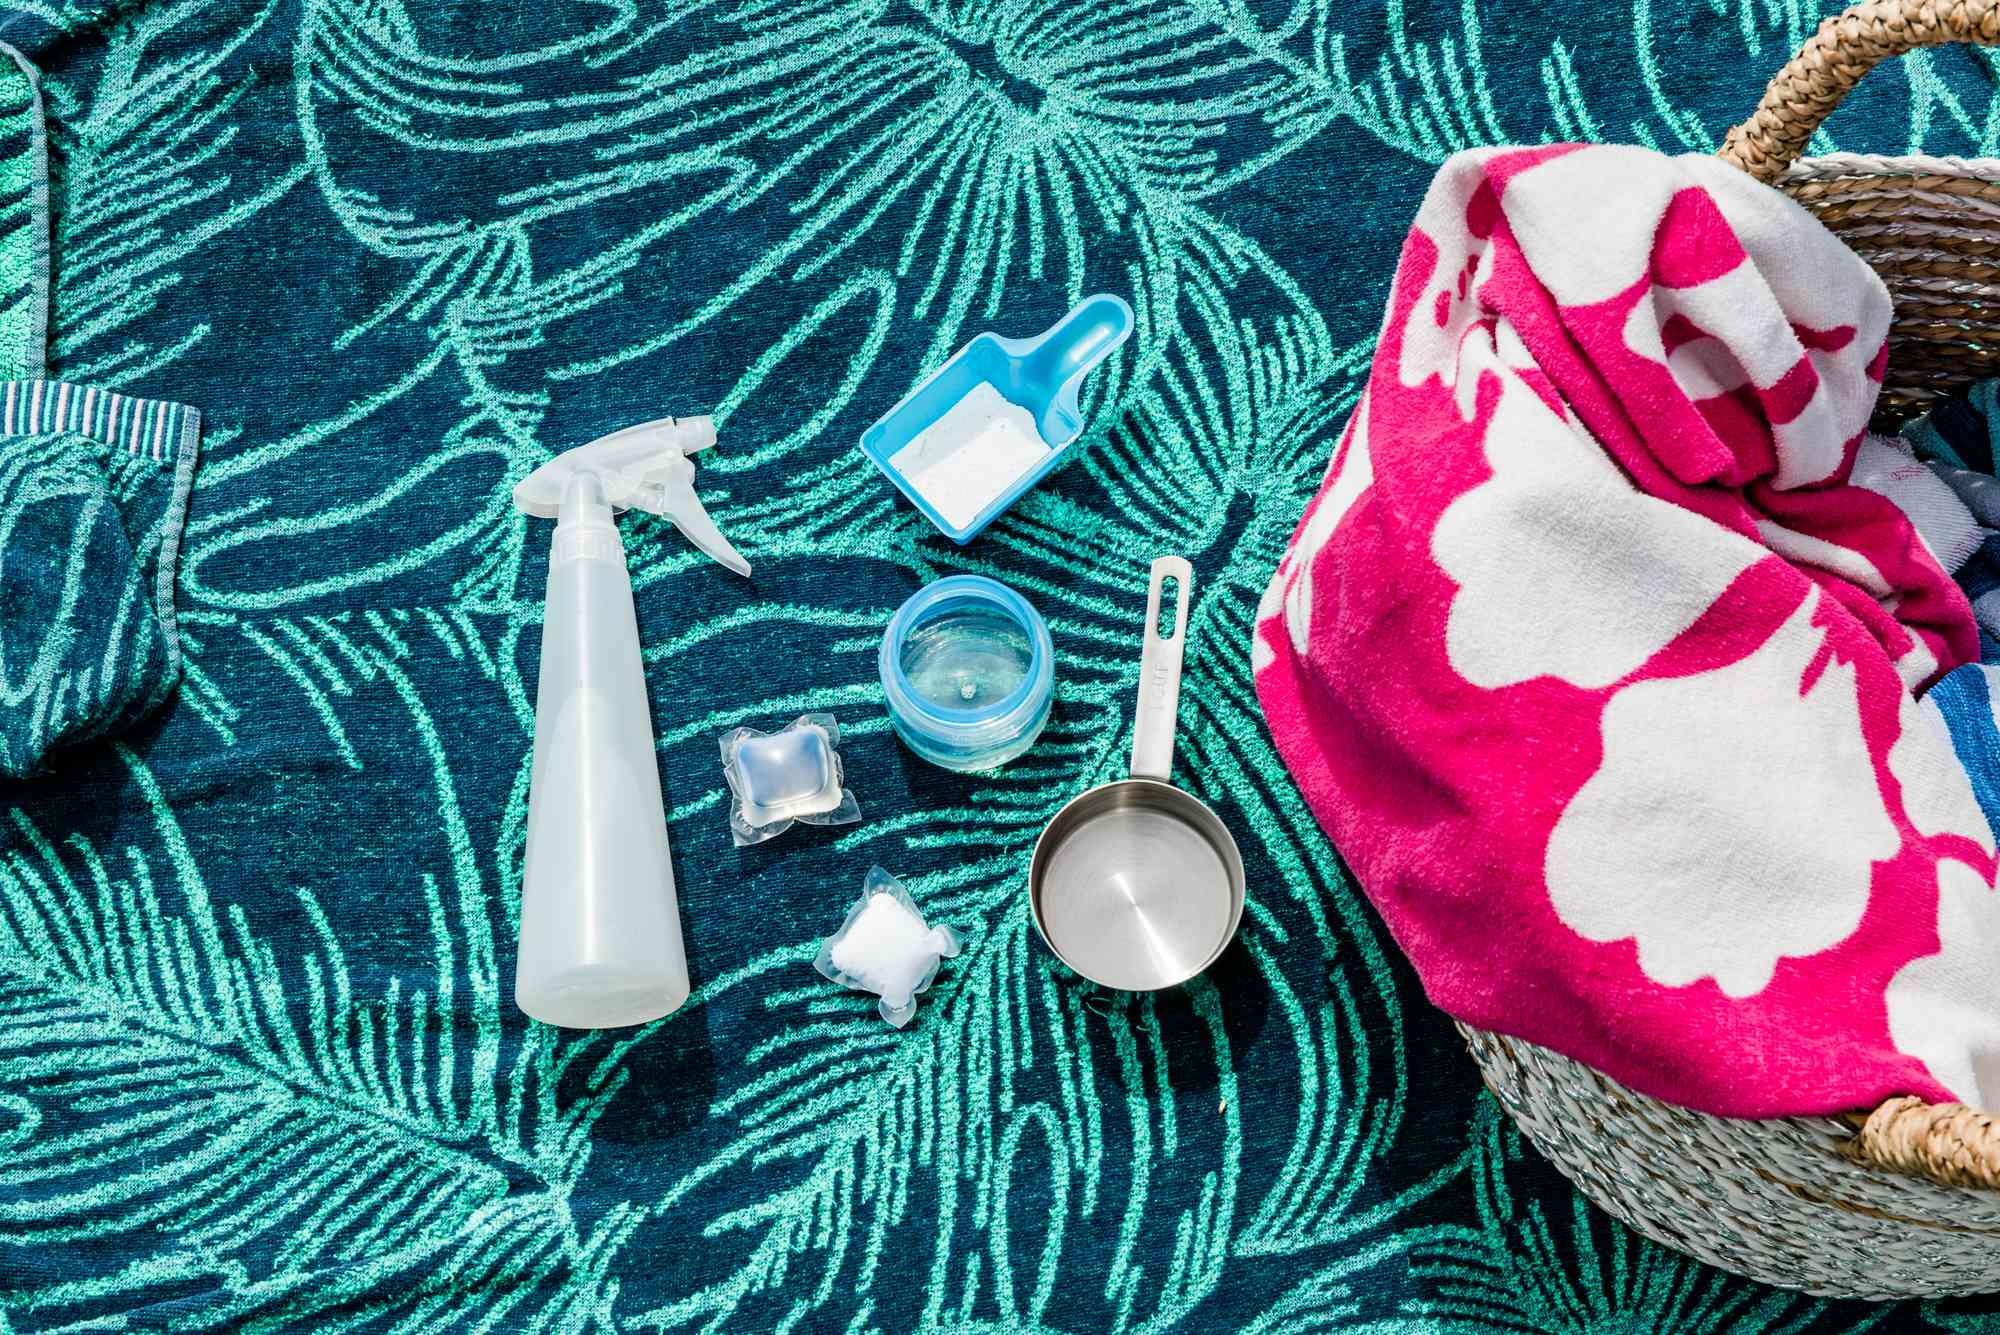 materials for cleaning beach towels